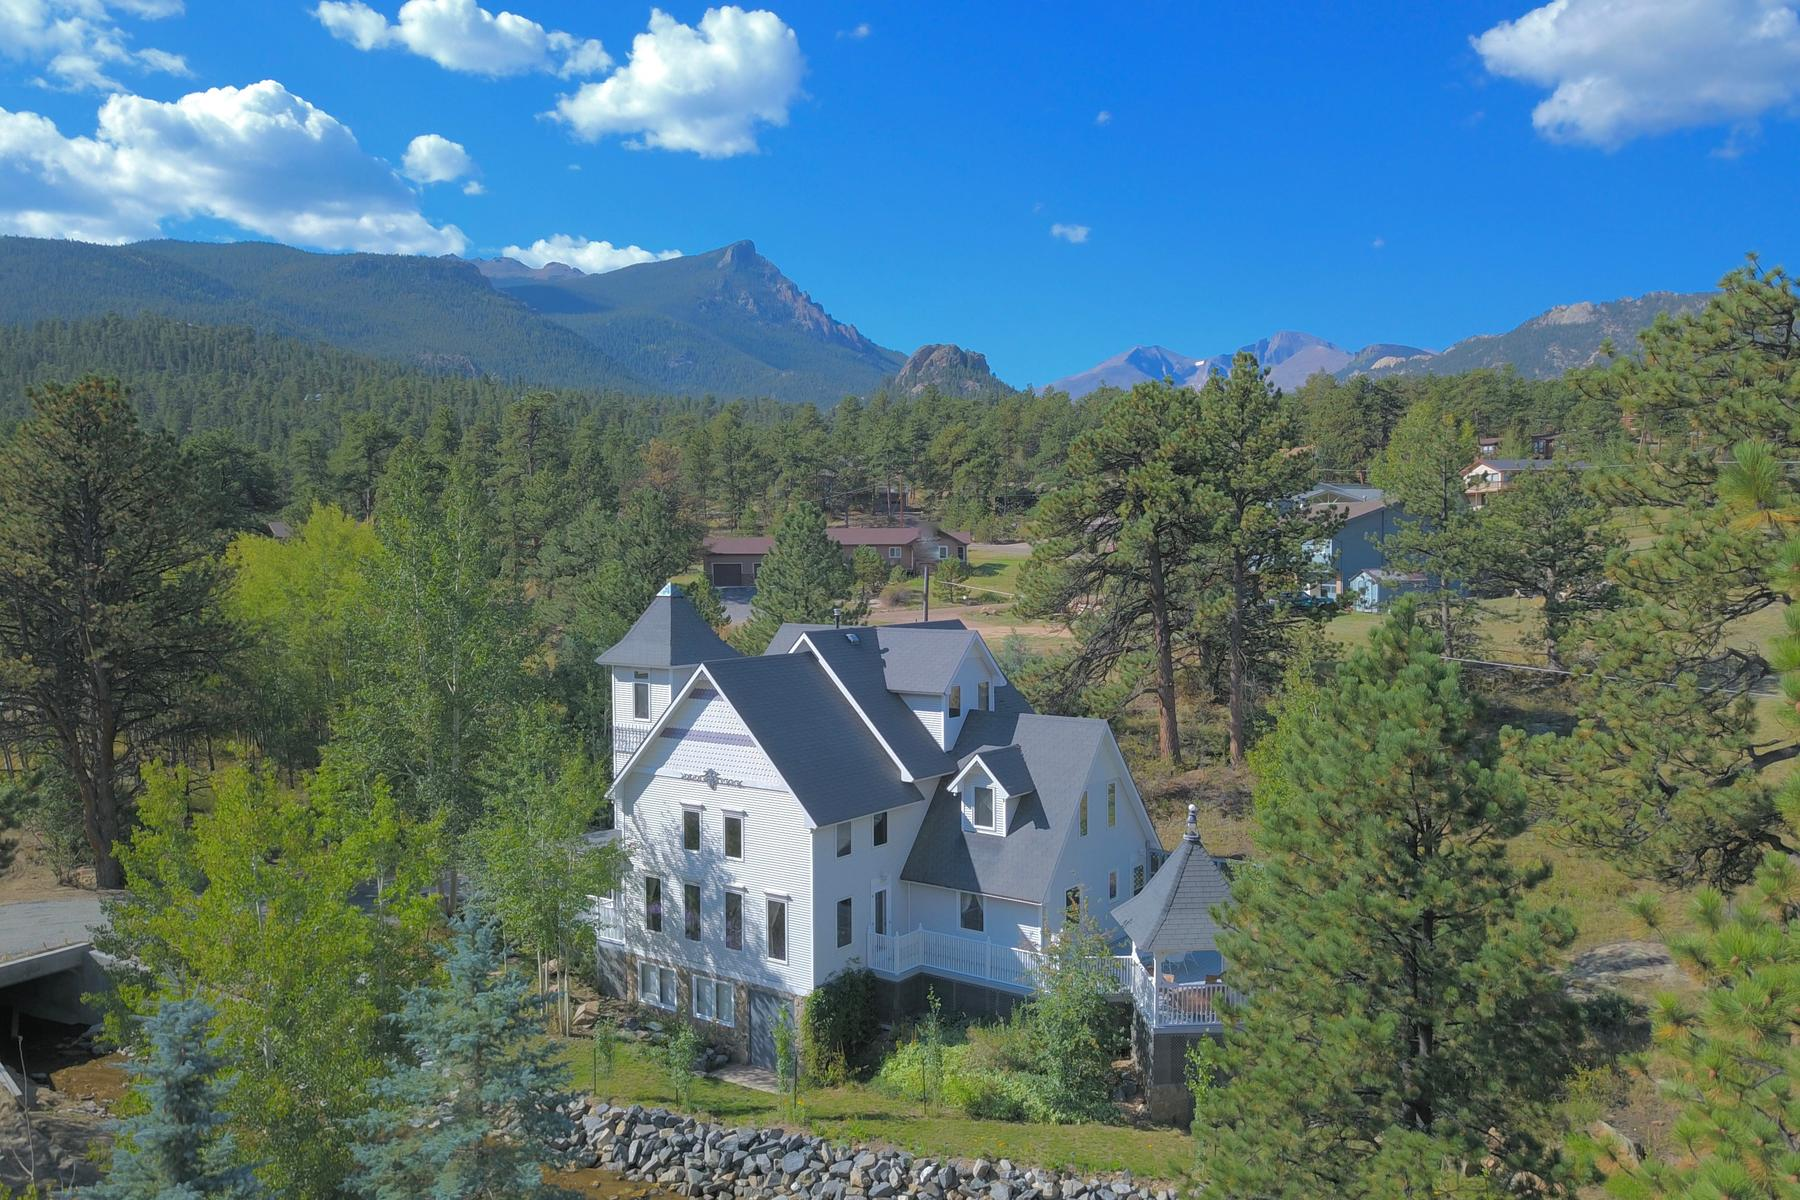 Single Family Home for Active at Three Story Victorian Home On Fish Creek 2809 Fish Creek Rd Estes Park, Colorado 80517 United States